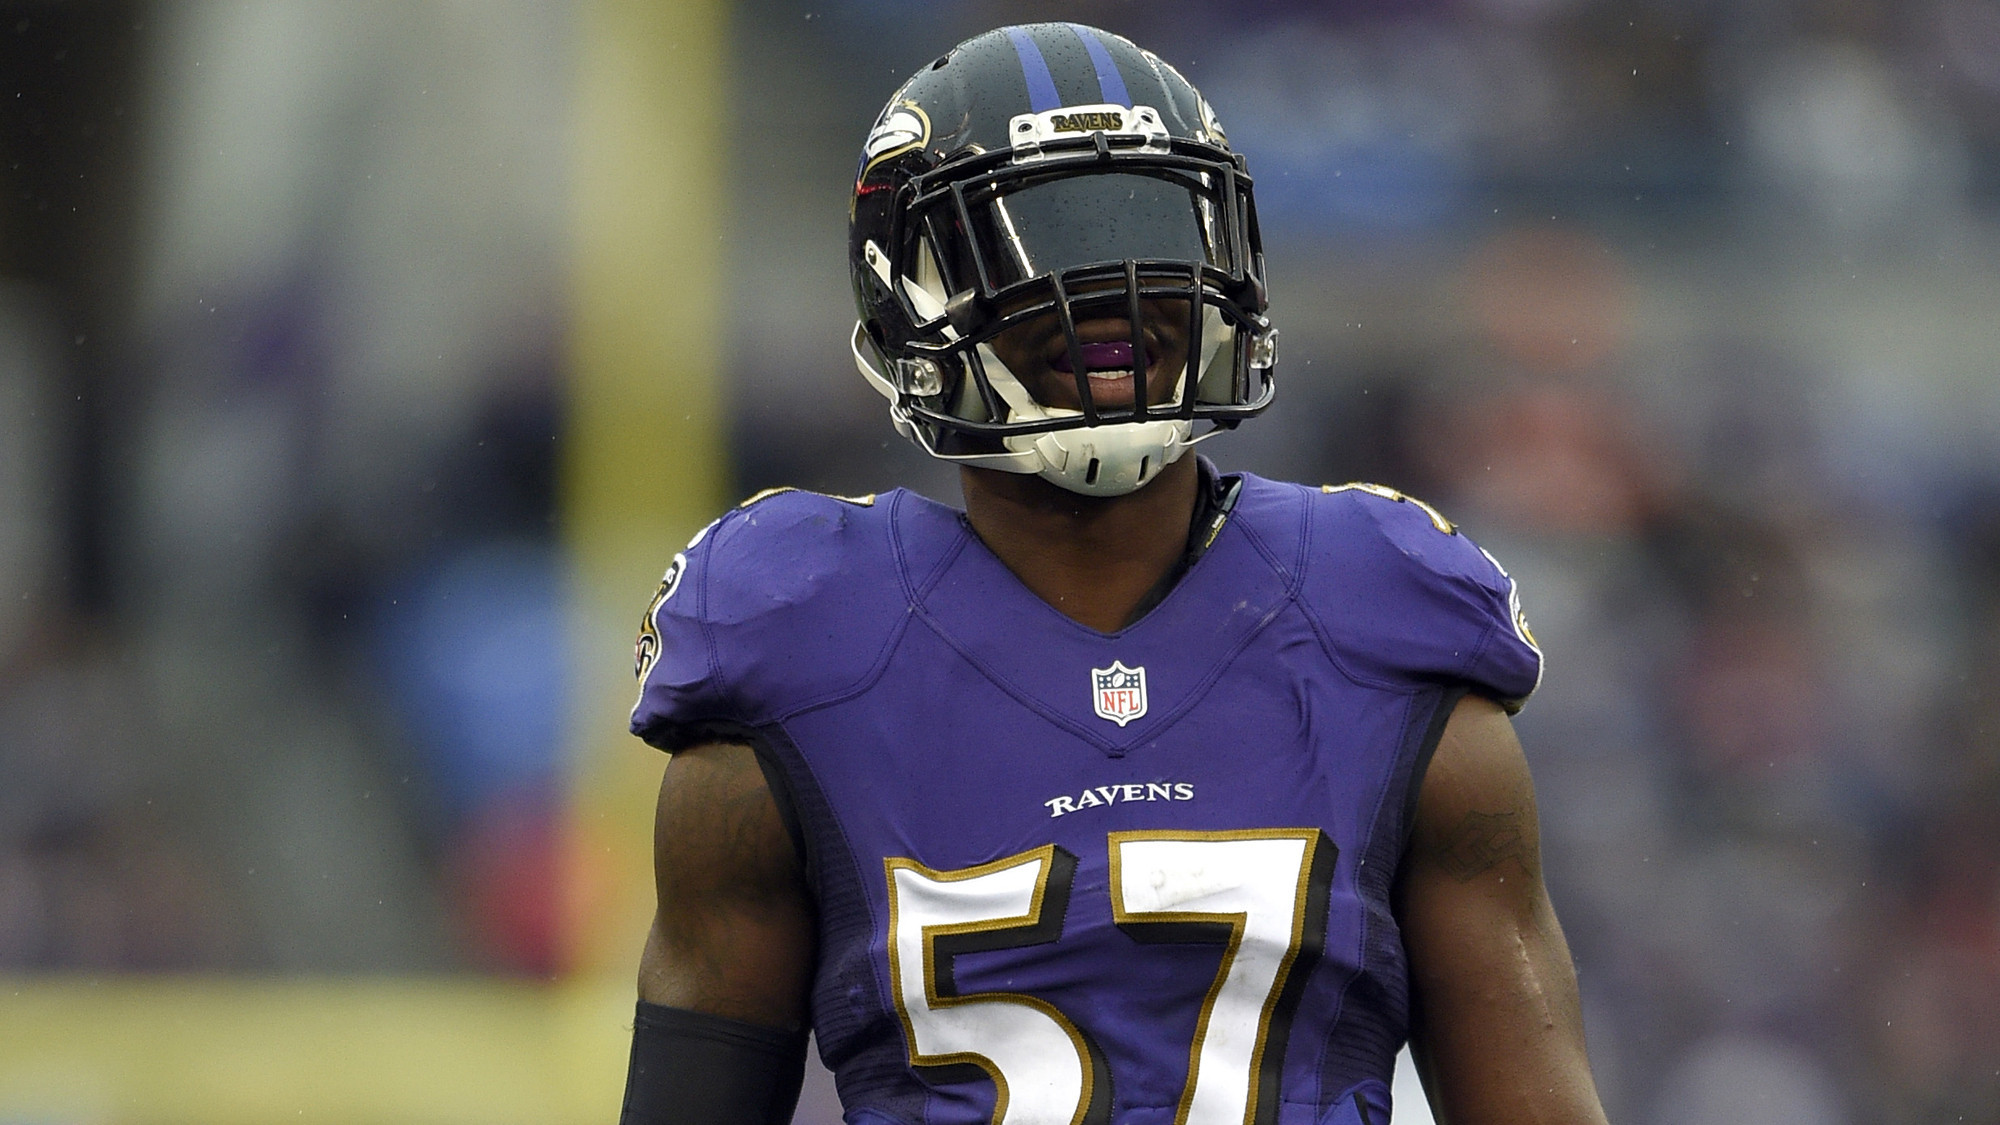 Ravens C J Mosley concludes successful rookie year in Pro Bowl